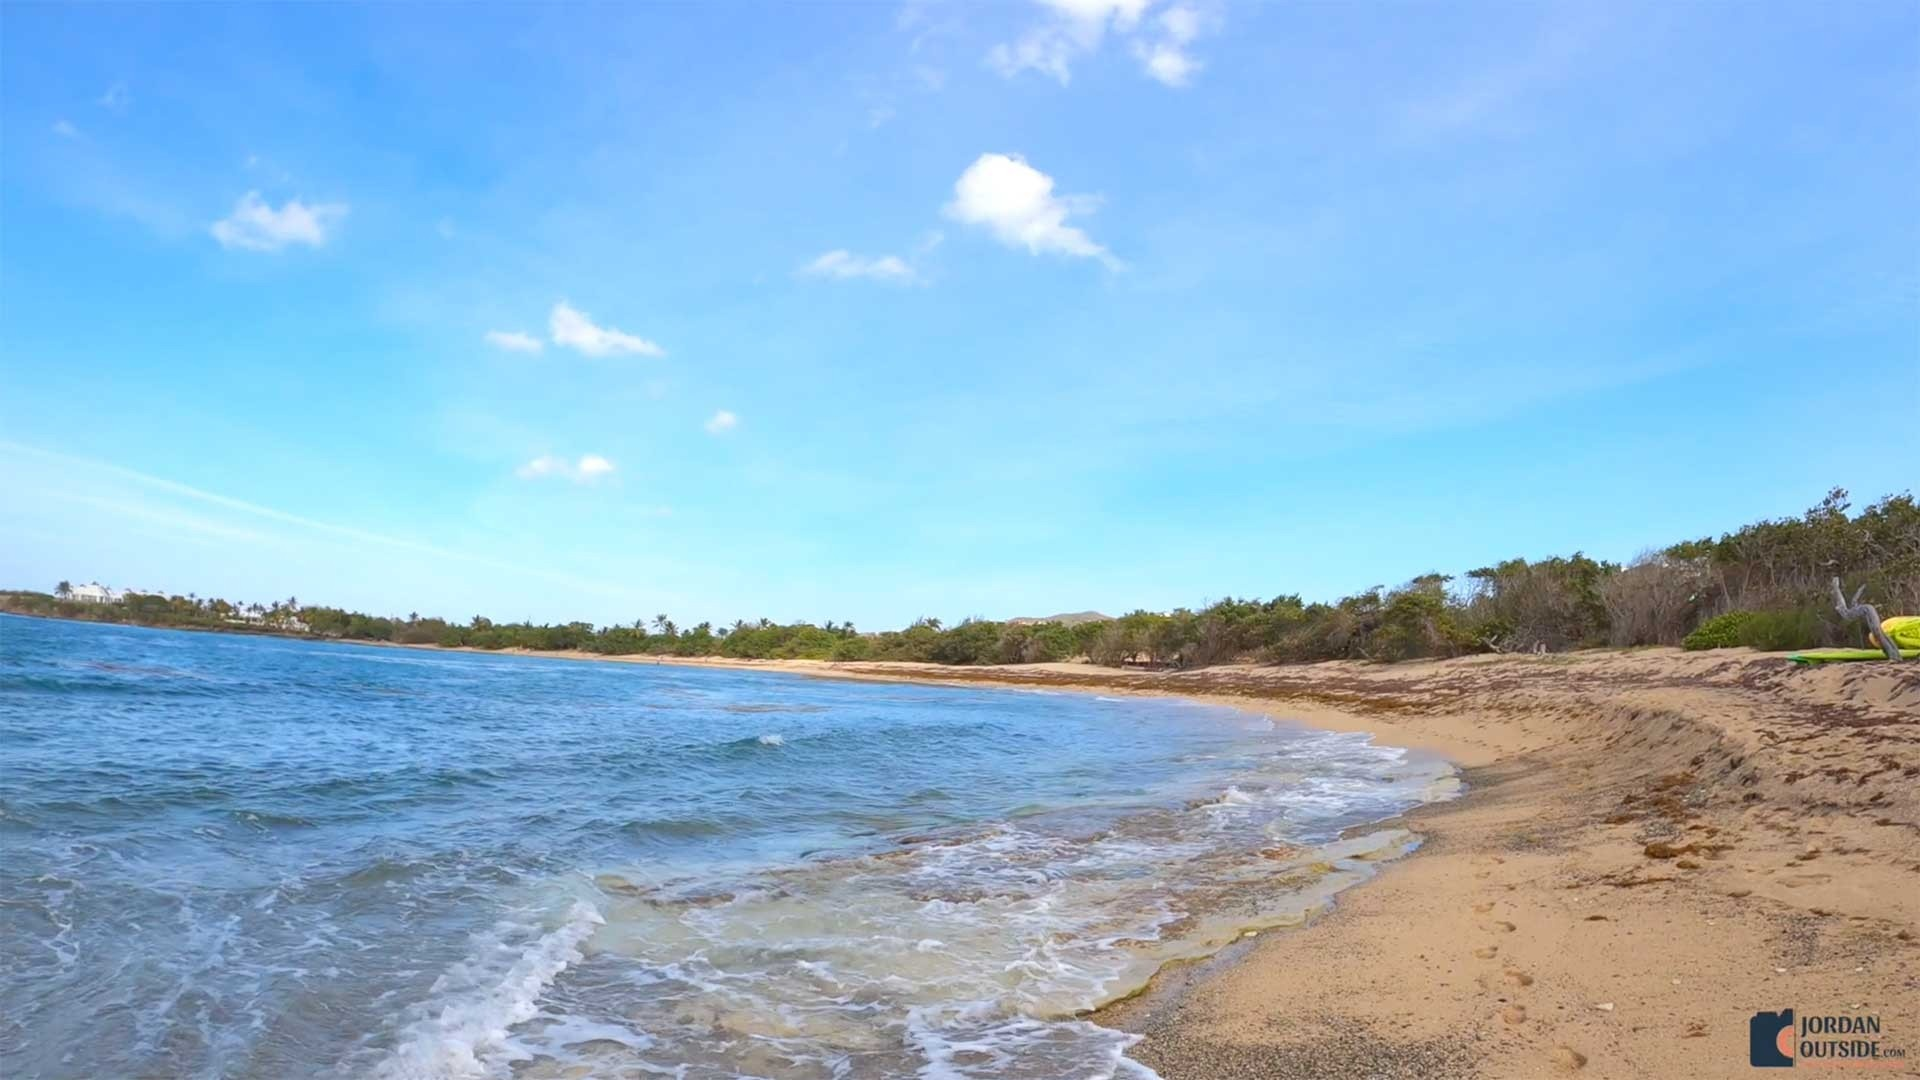 The view from the end of Shoy's Beach